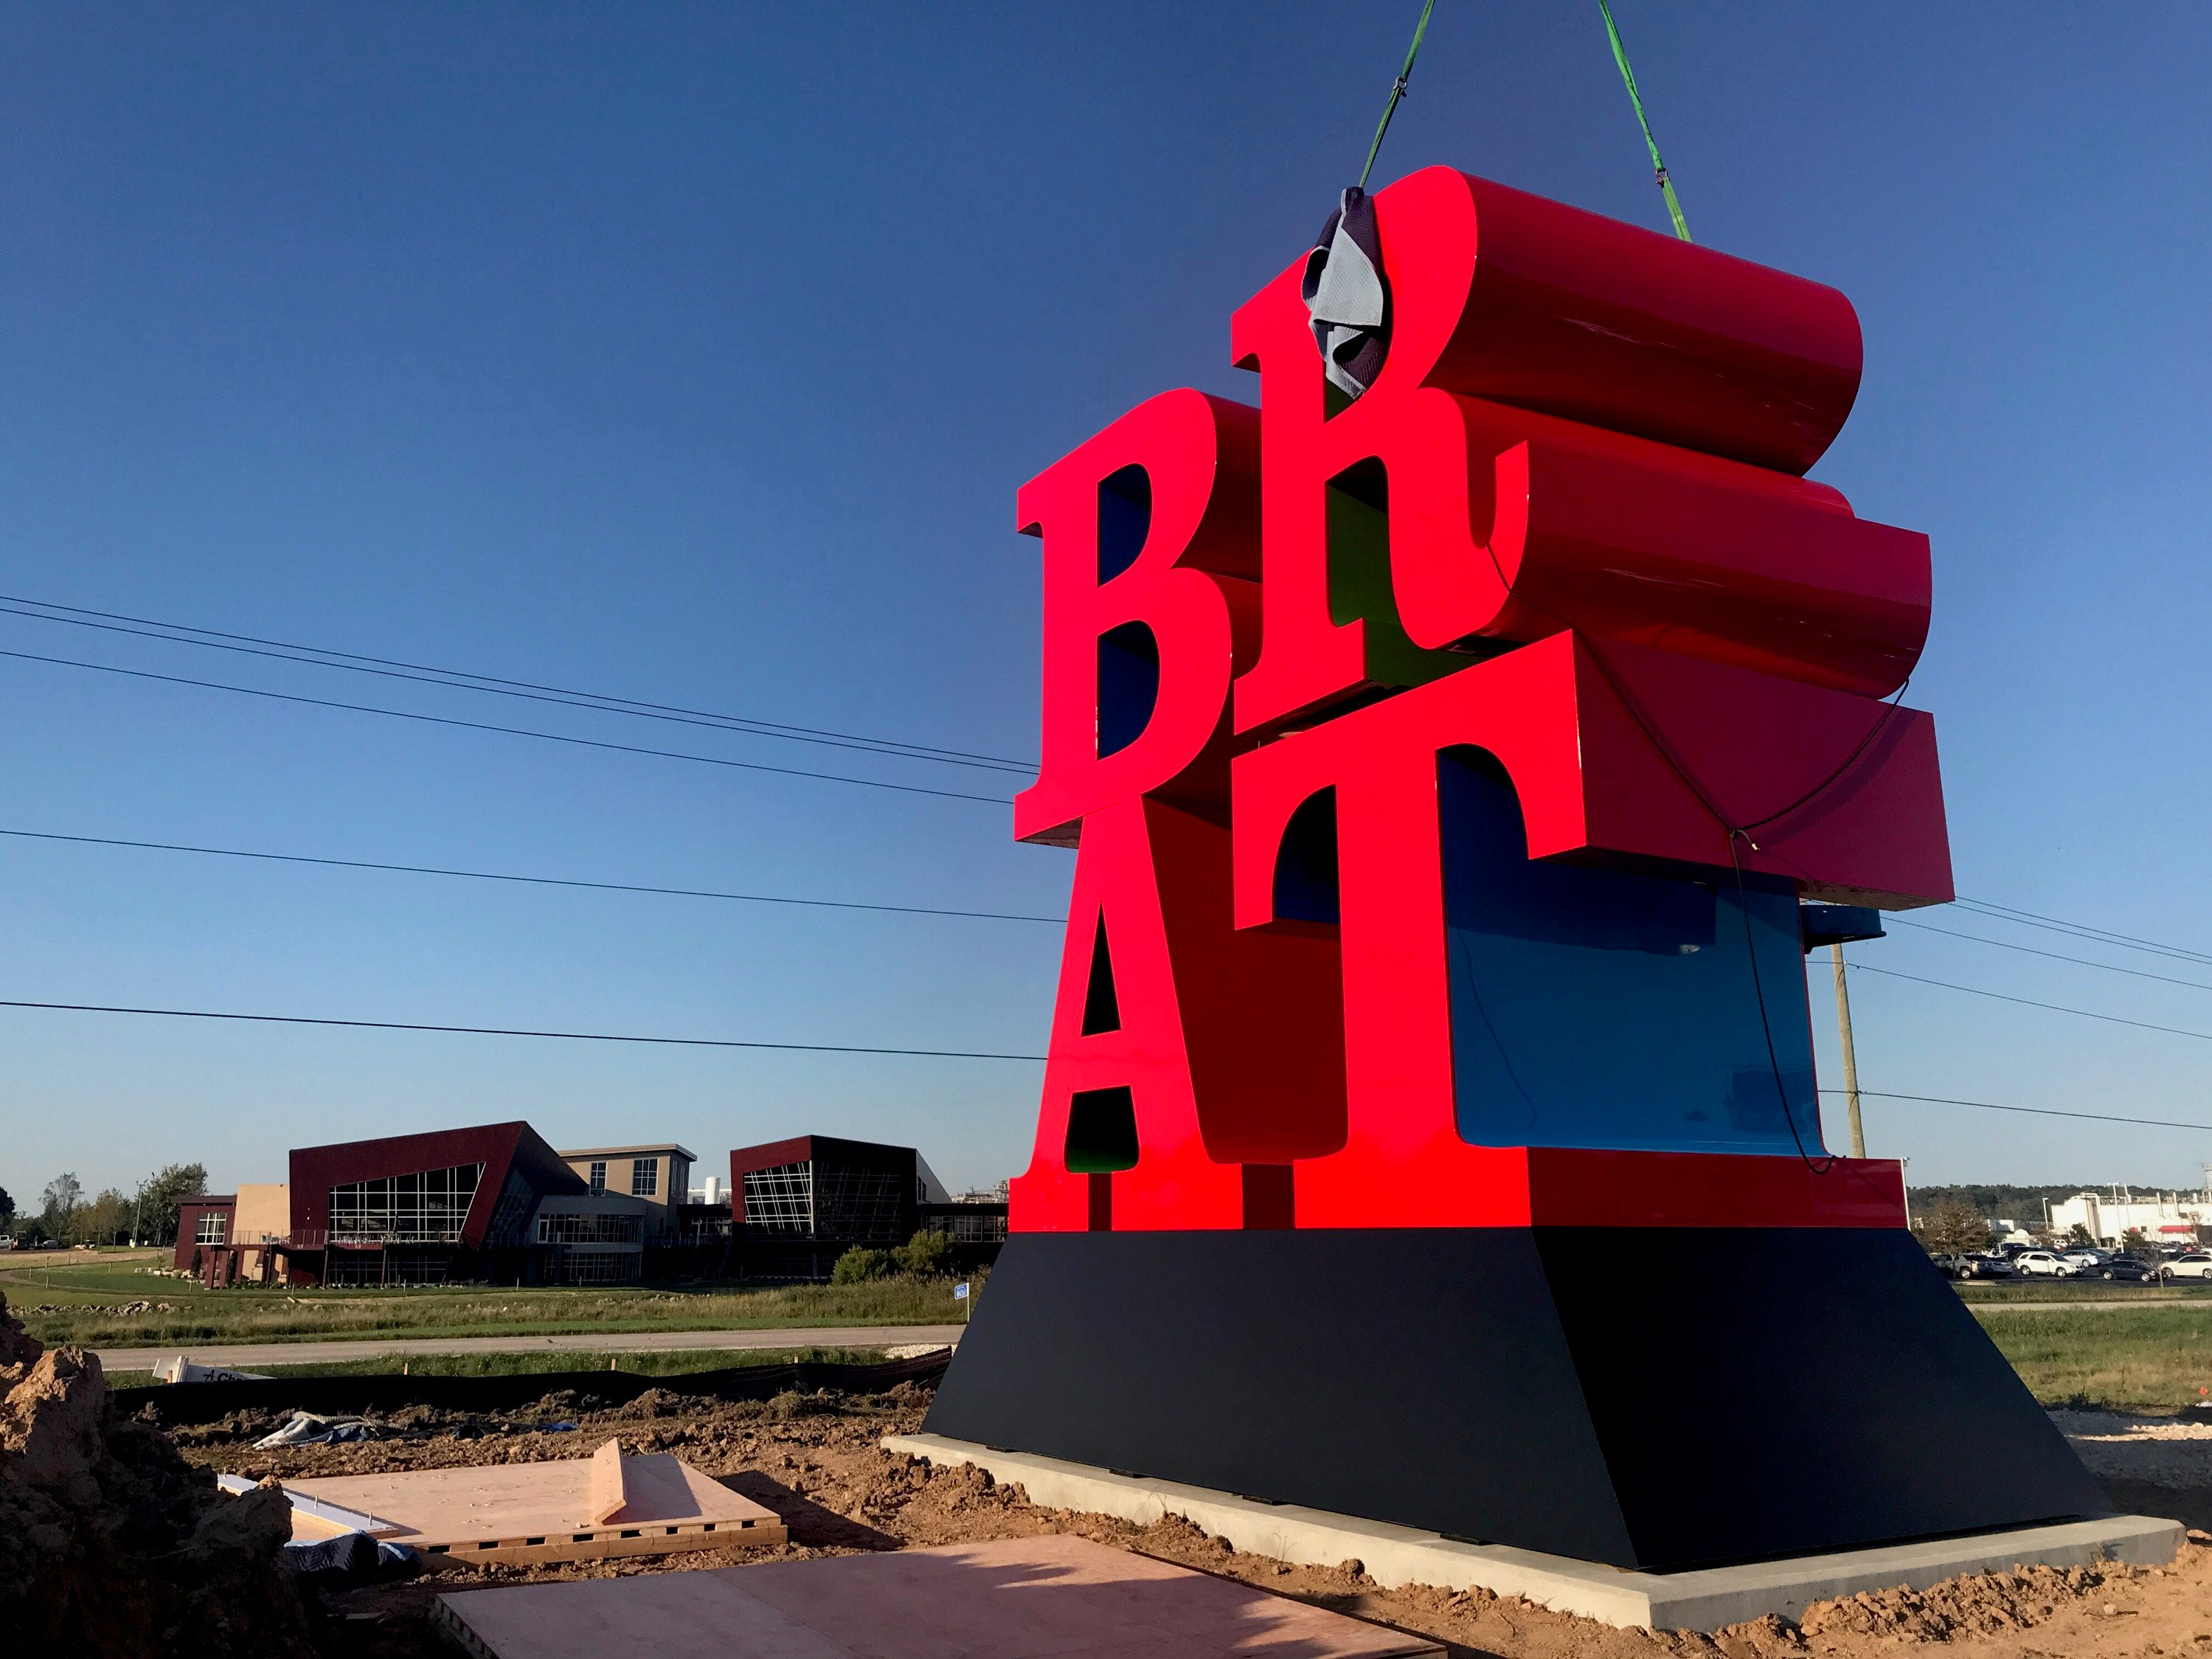 The letter R is lowered into place.  Johnsonville installed what's said to be one of Robert Indiana's last pieces of art -- a sculpture spelling out the word BRAT -- at its headquarters in Sheboygan Falls on Tuesday, September 11, 2018. The tribute to bratwurst was commissioned by the owners of Johnsonville Sausage.